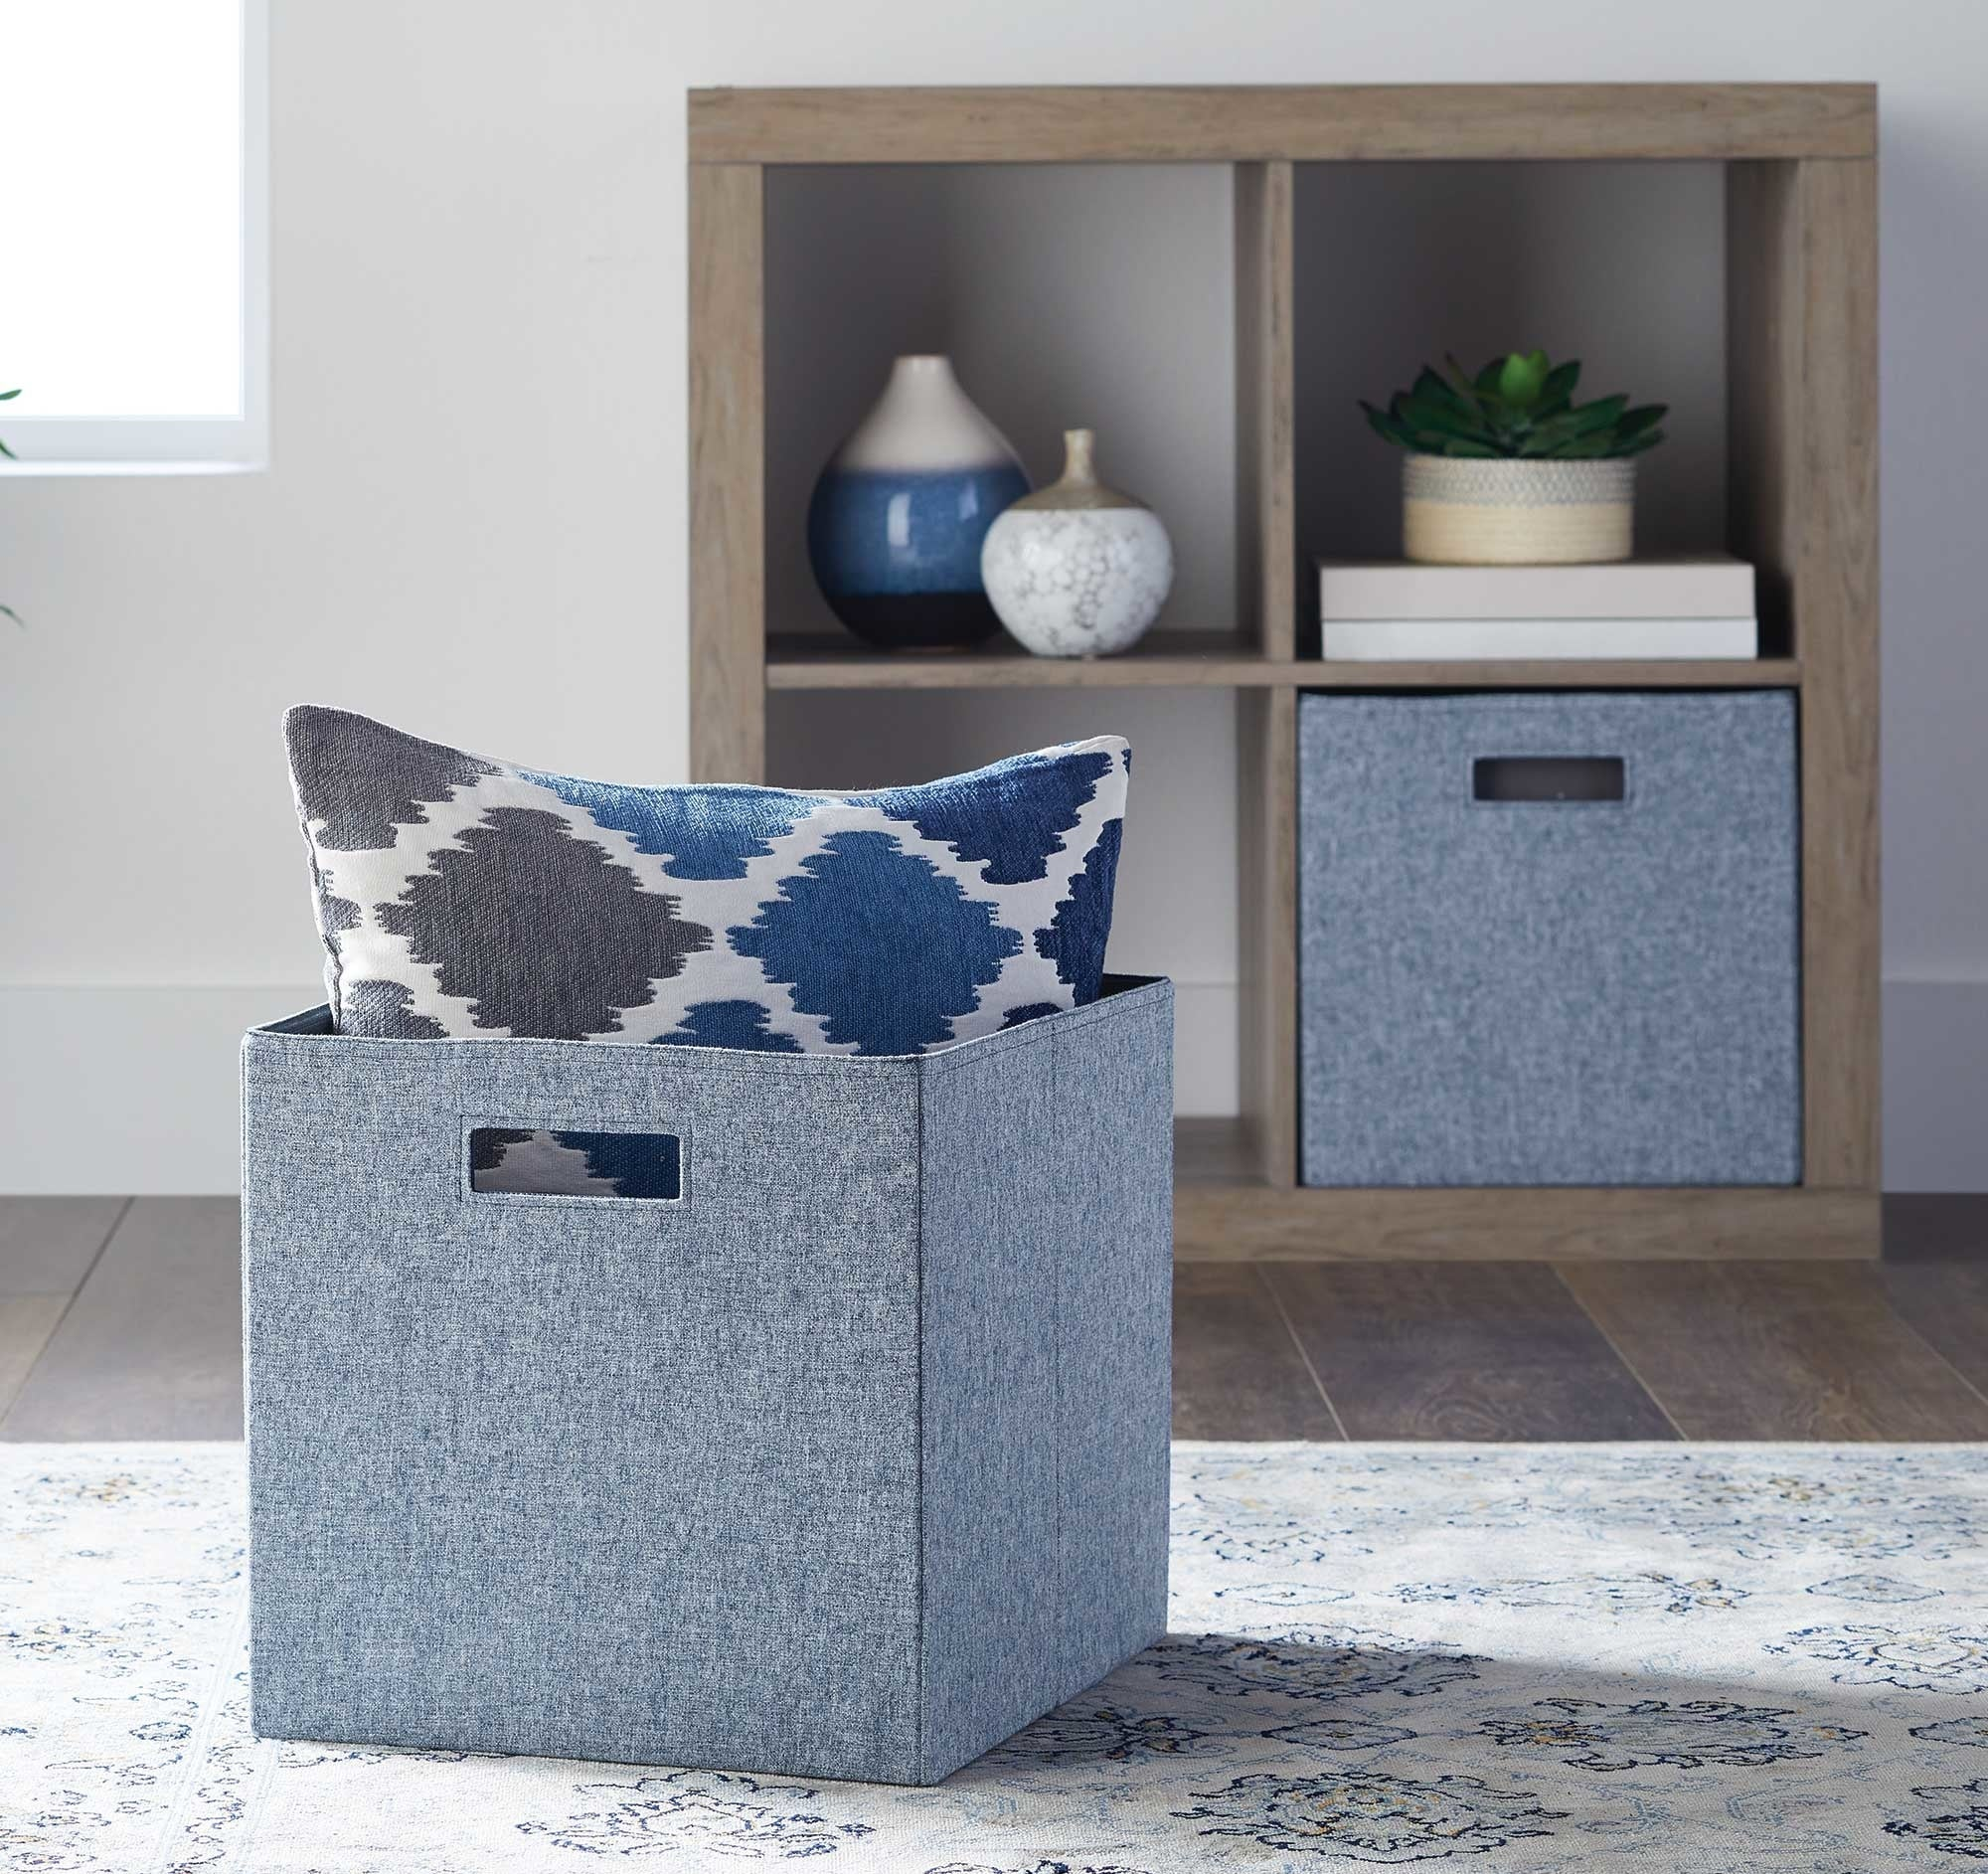 The storage bins in the washed indigo color